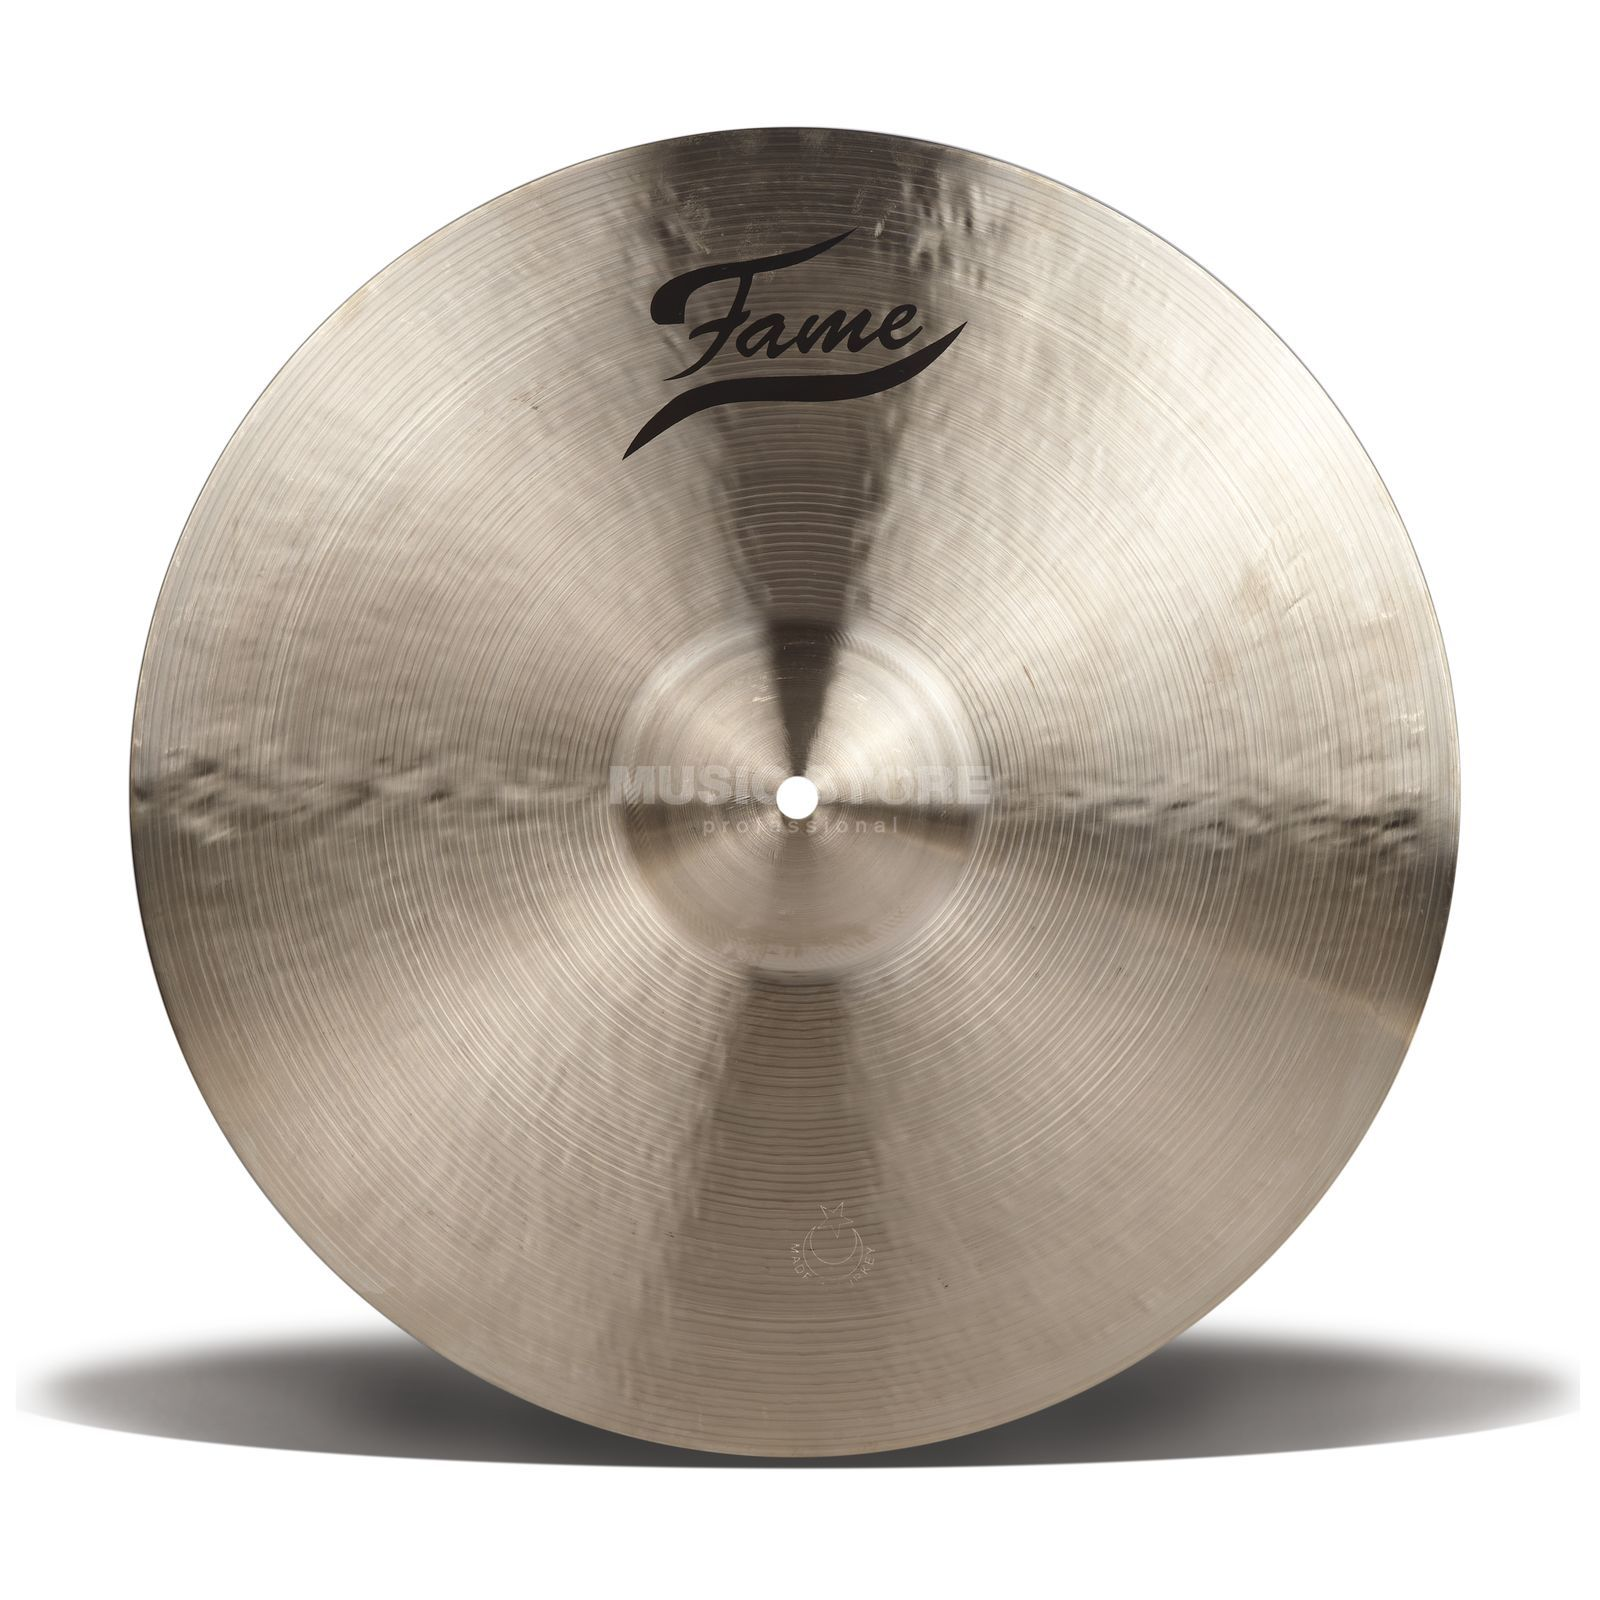 "Fame Masters B20 Crash 17"" Natural Finish Produktbillede"